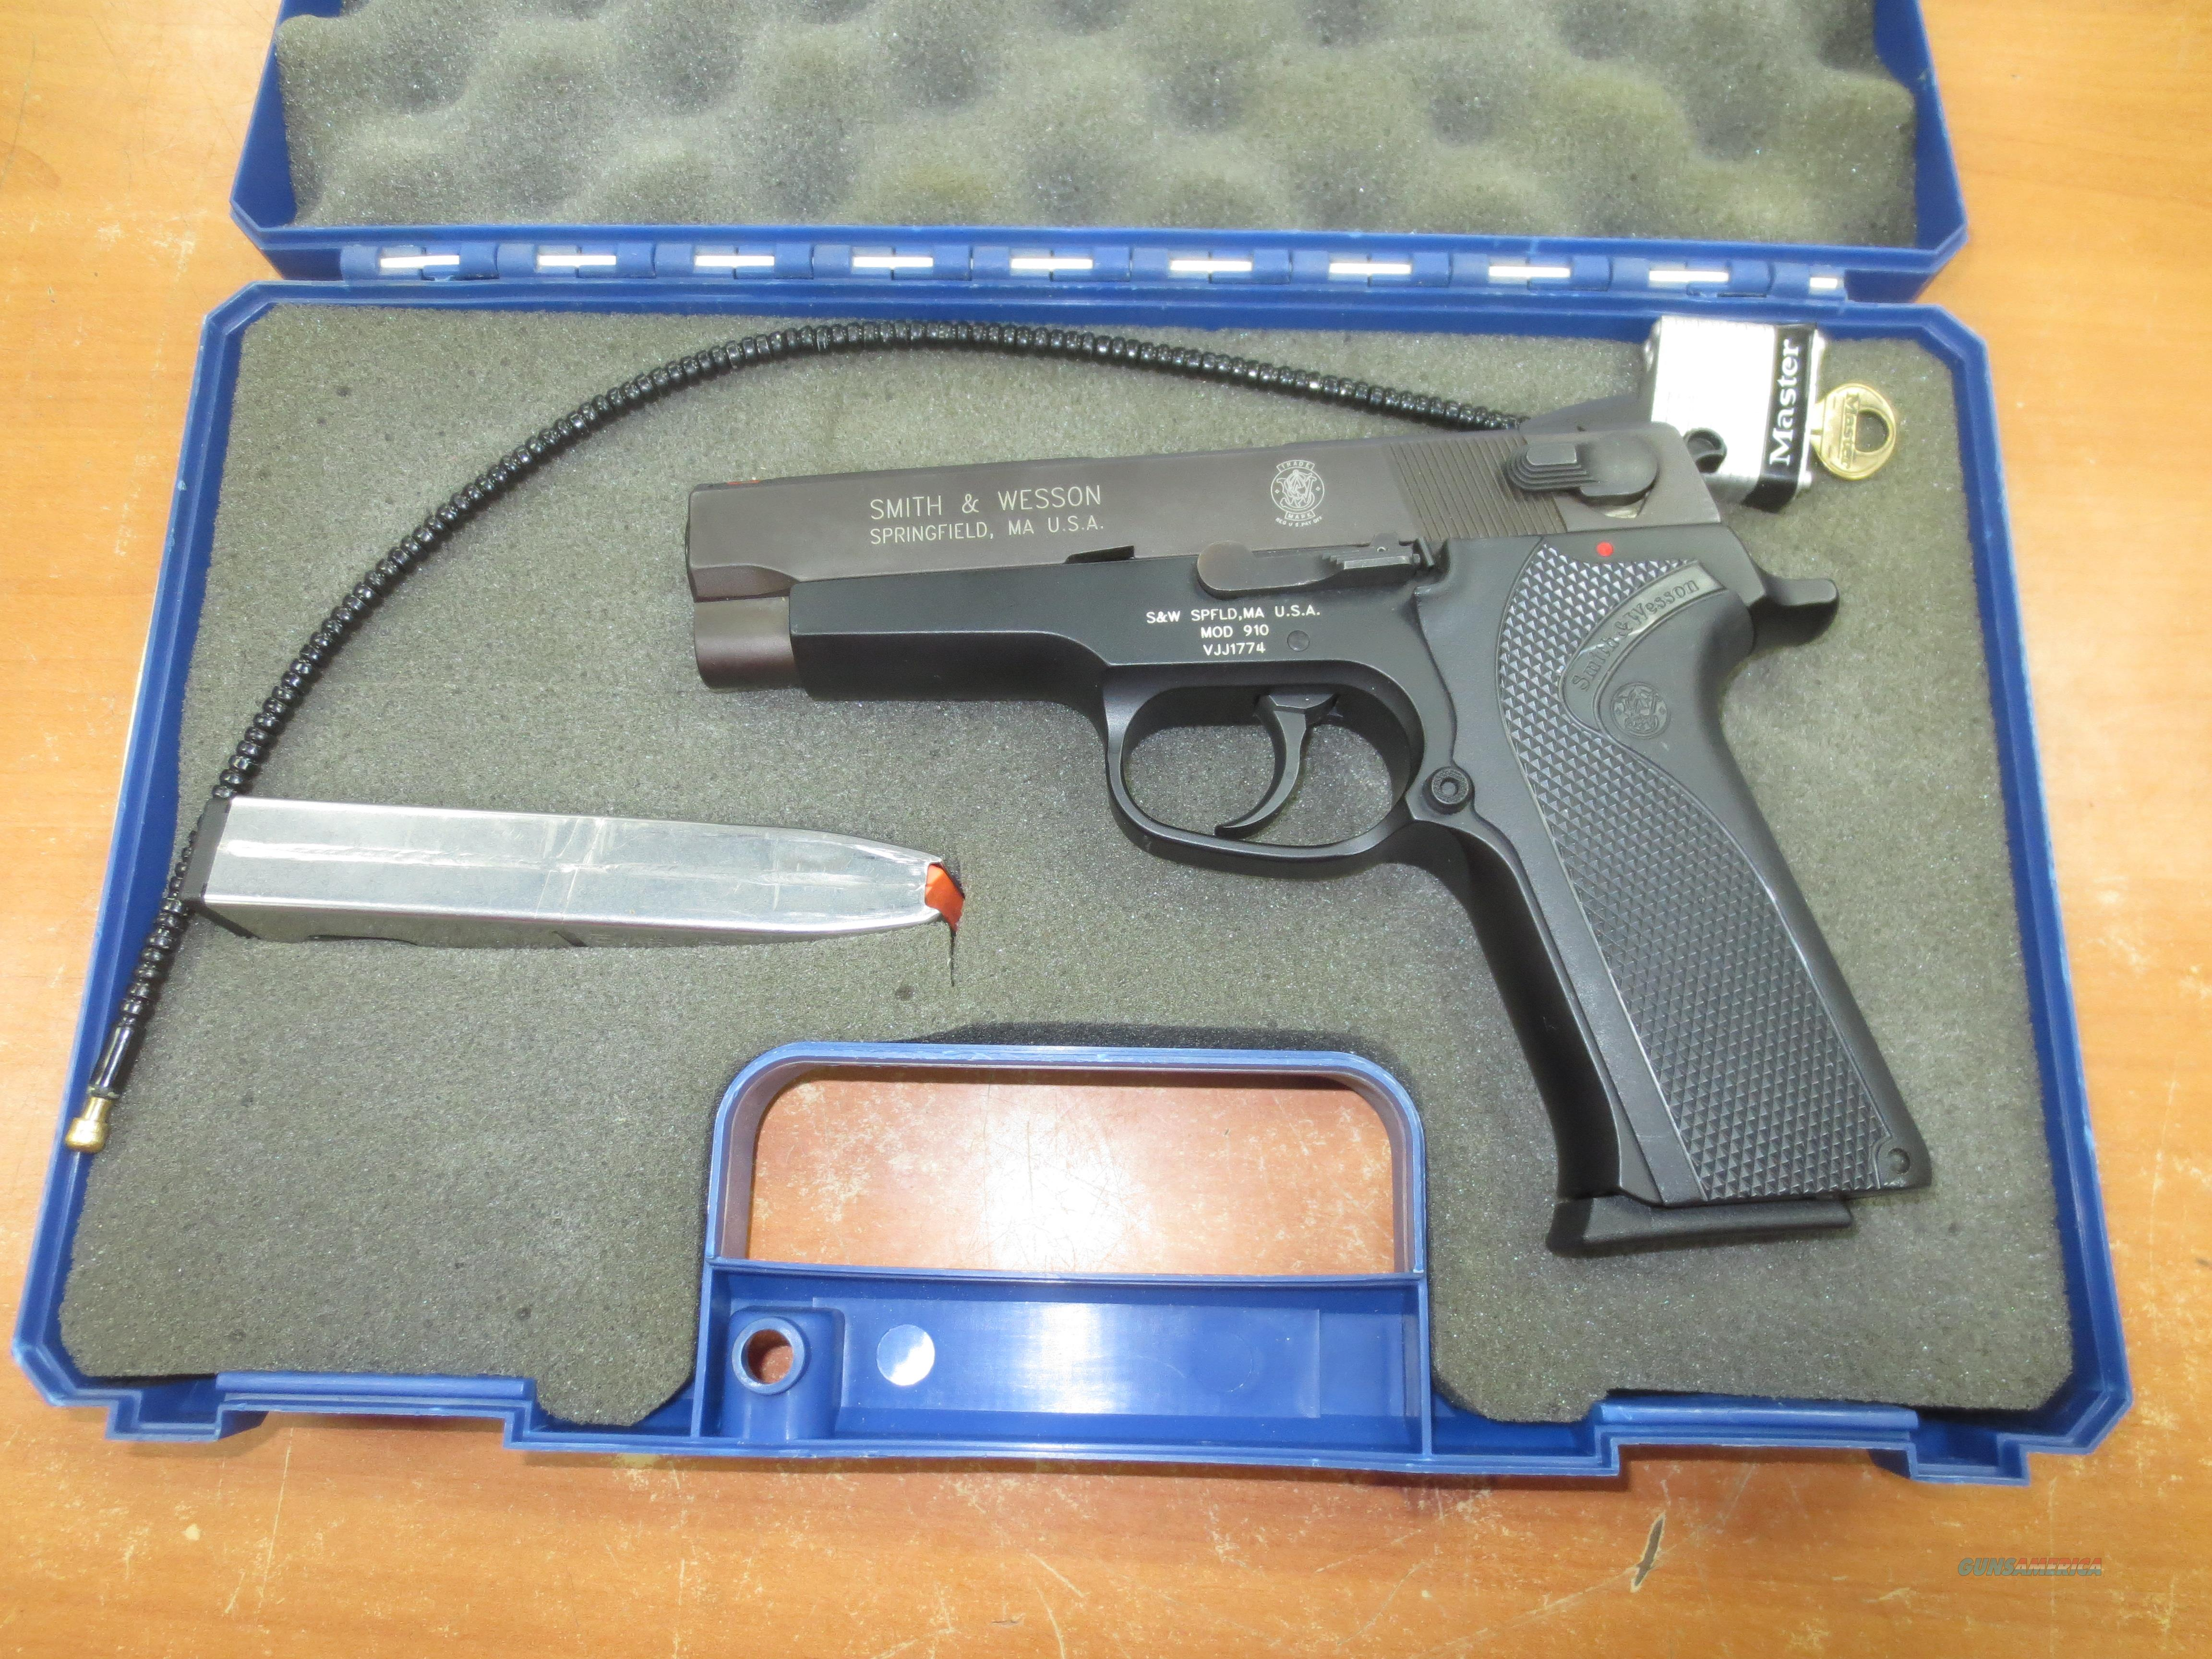 Smith and Wesson mod # 910 with orig box 9mm  Guns > Pistols > Smith & Wesson Pistols - Autos > Alloy Frame